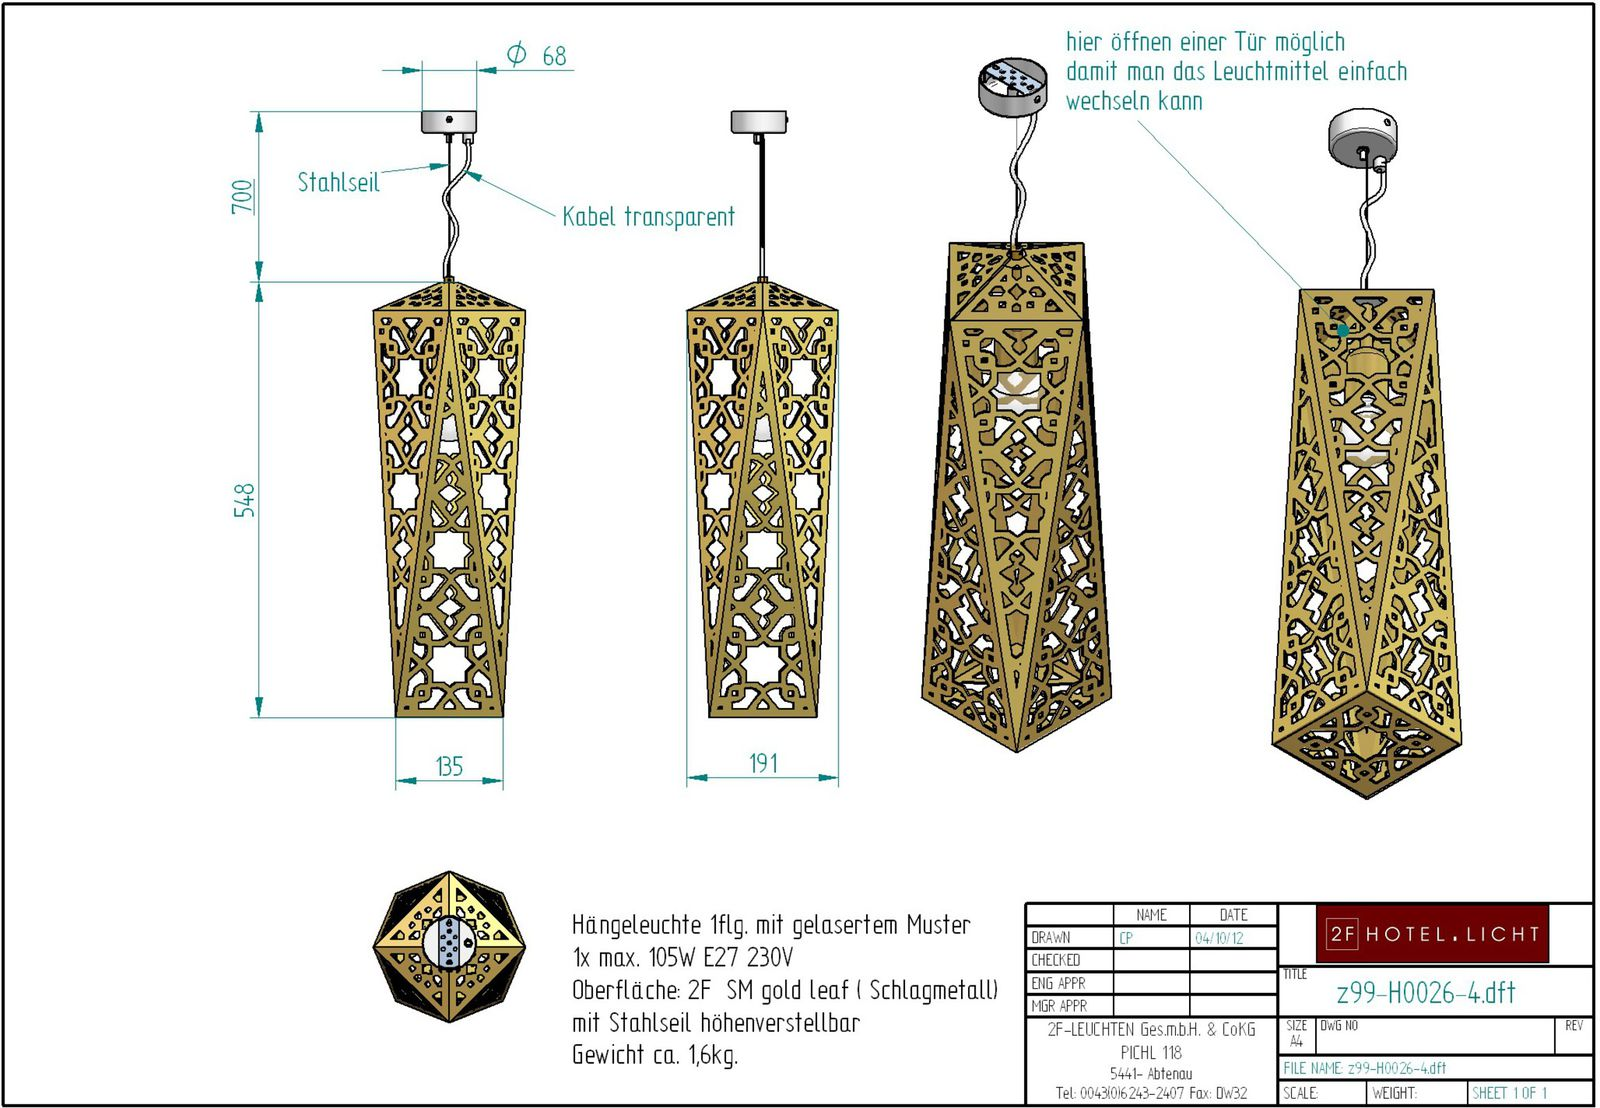 Pendant lamp, height=1248mm, wide=191mm, surface: gold leaf, techn. details: 1xE27, max. 105W, 230V